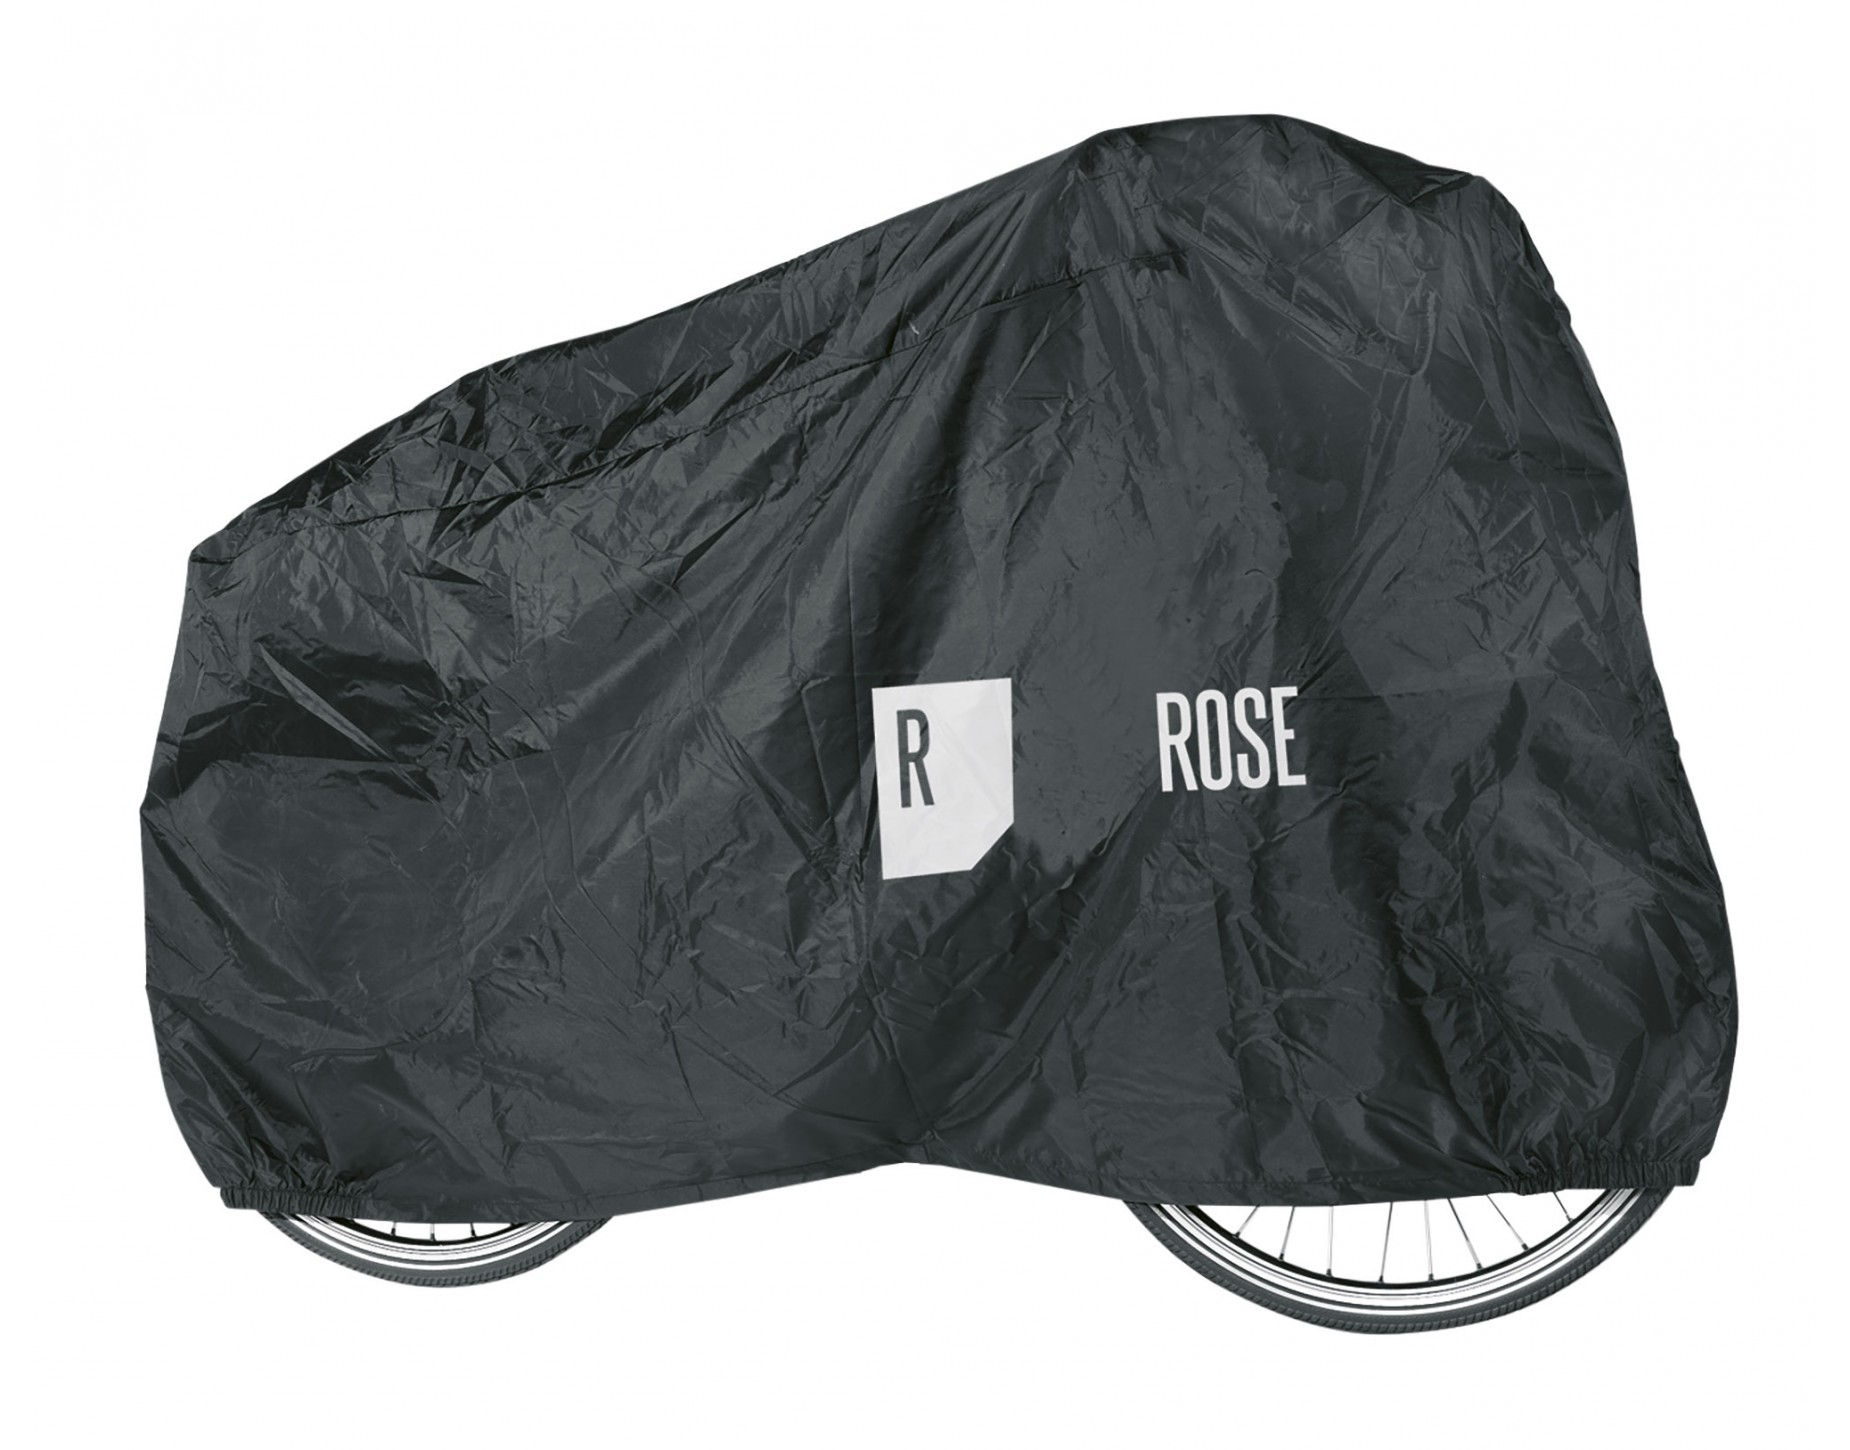 Rose cycle your way kit housses protection pour v lo de for Housse protection velo